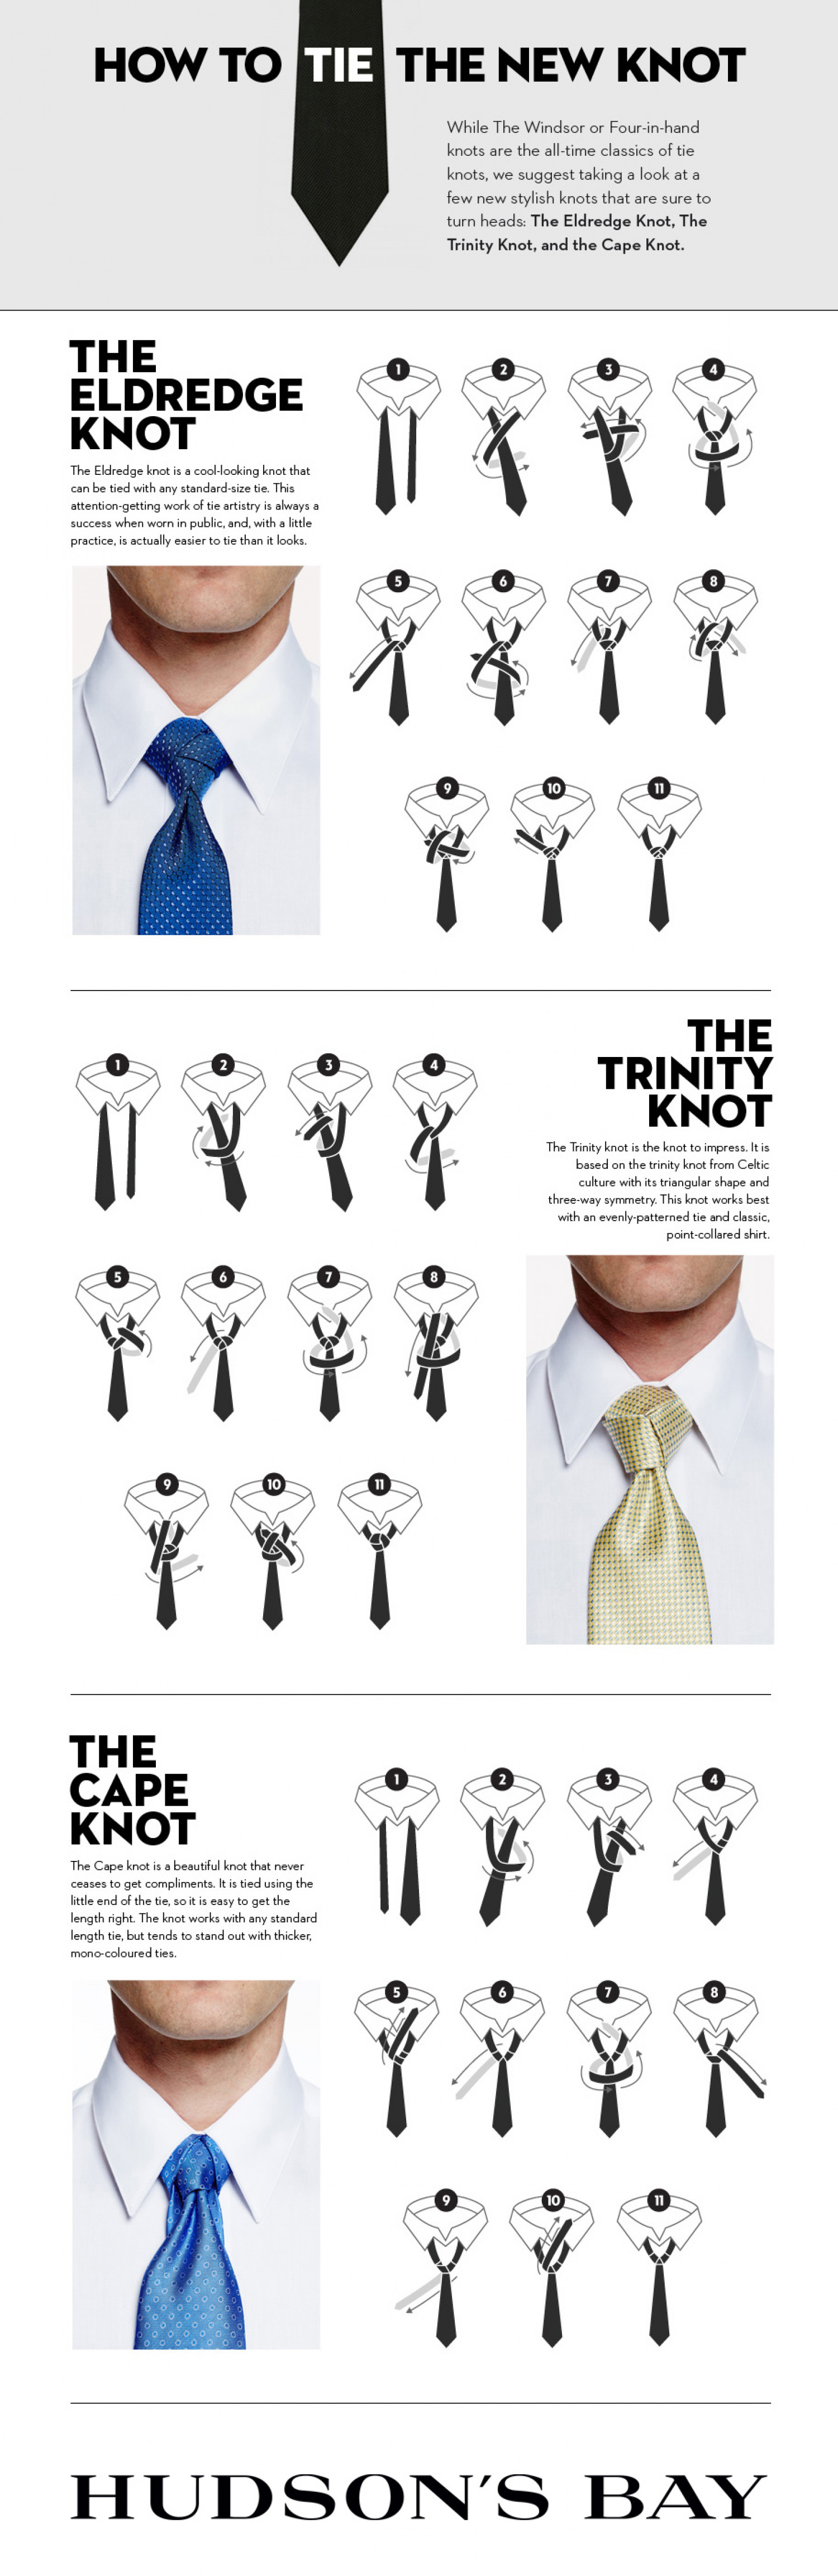 How to tie the new knot visual how to tie the new knot infographic ccuart Image collections